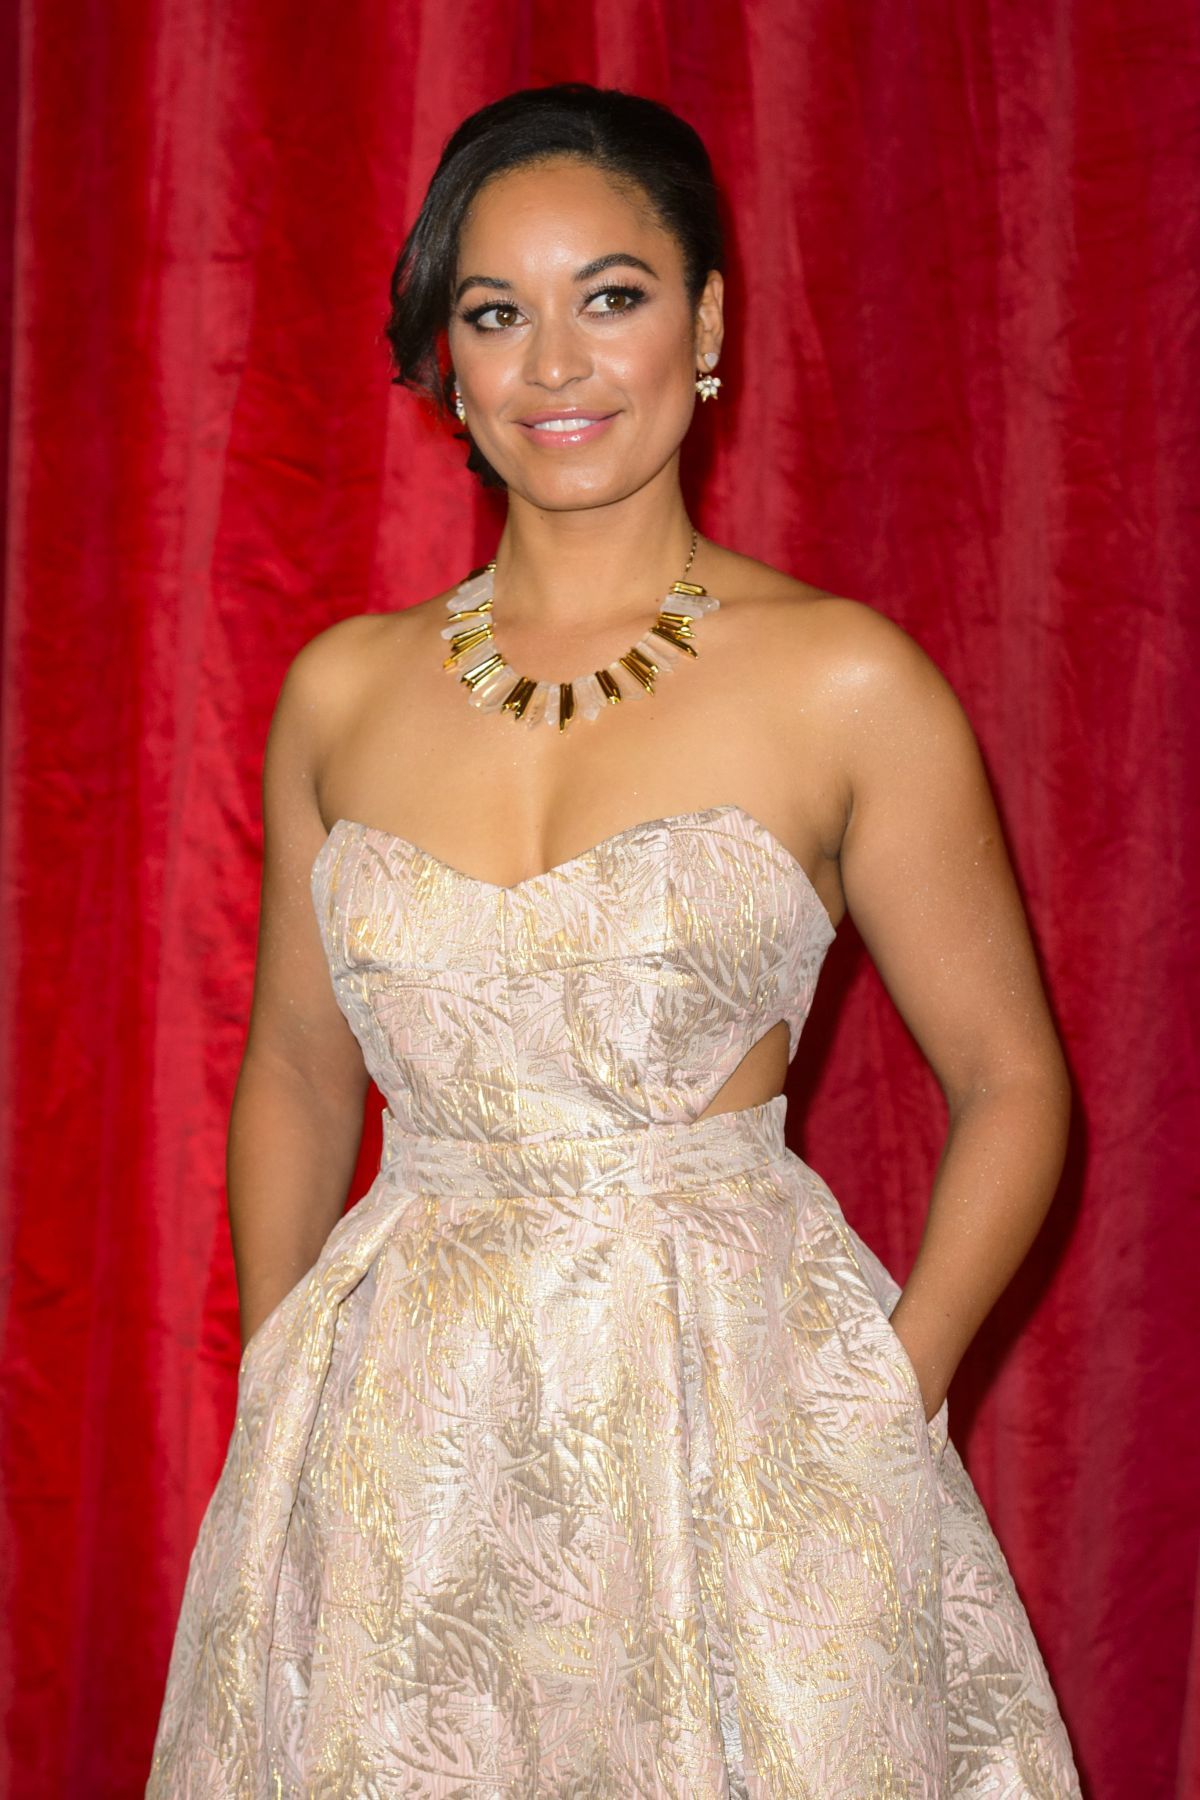 RHEA BAILEY at British Soap Awards 2016 in London 05/28/2016